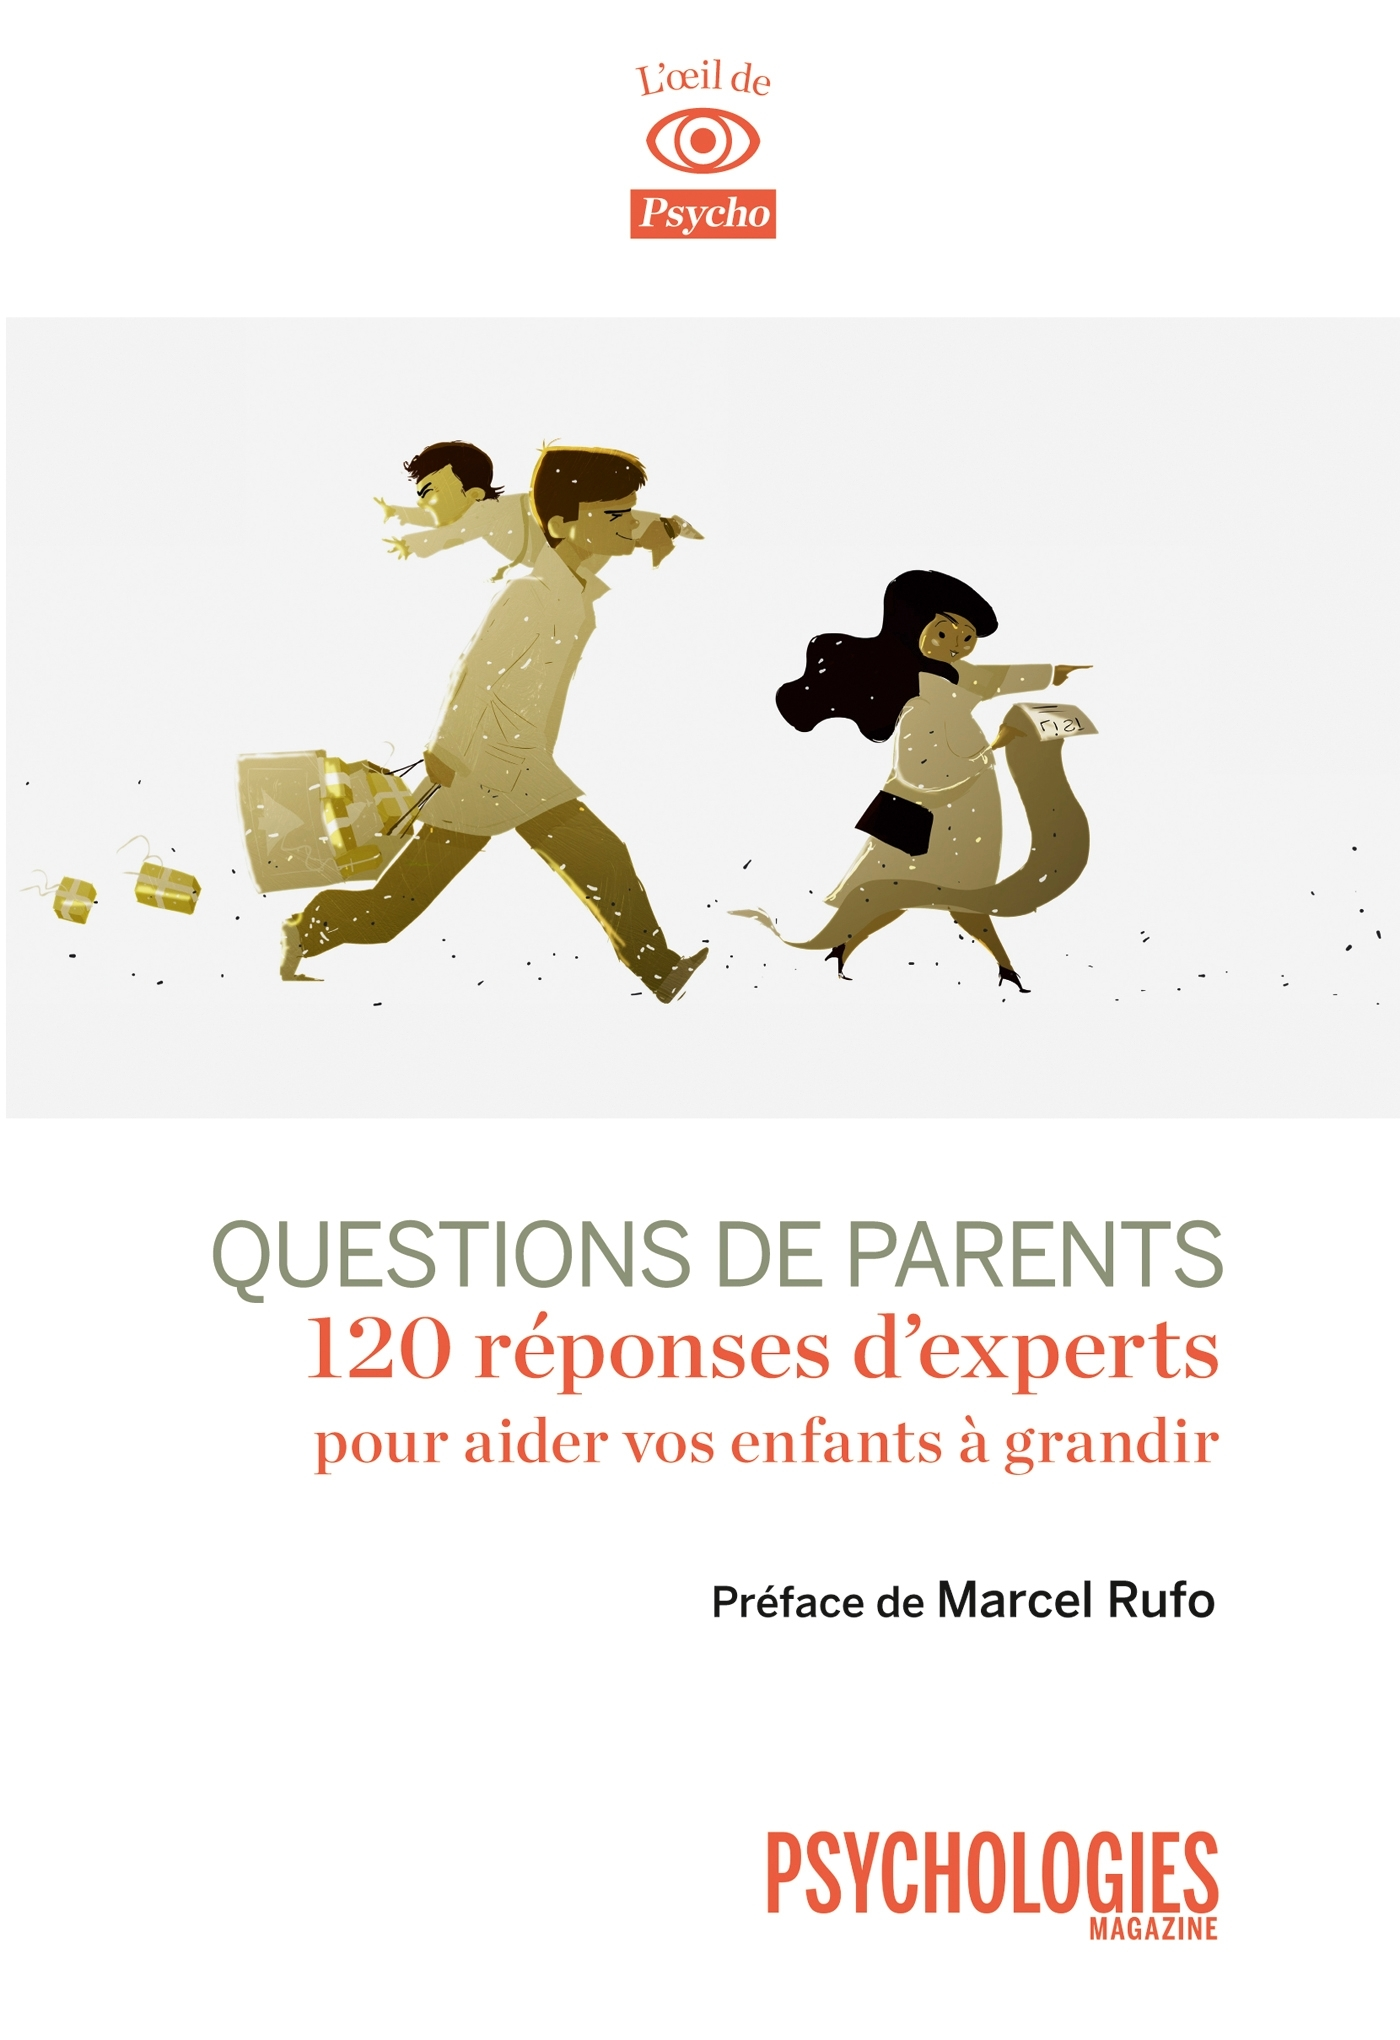 QUESTIONS DE PARENTS - 100 REPONSES D'EXPERT A VOS PREOCCUPATIONS QUOTIDIENNES